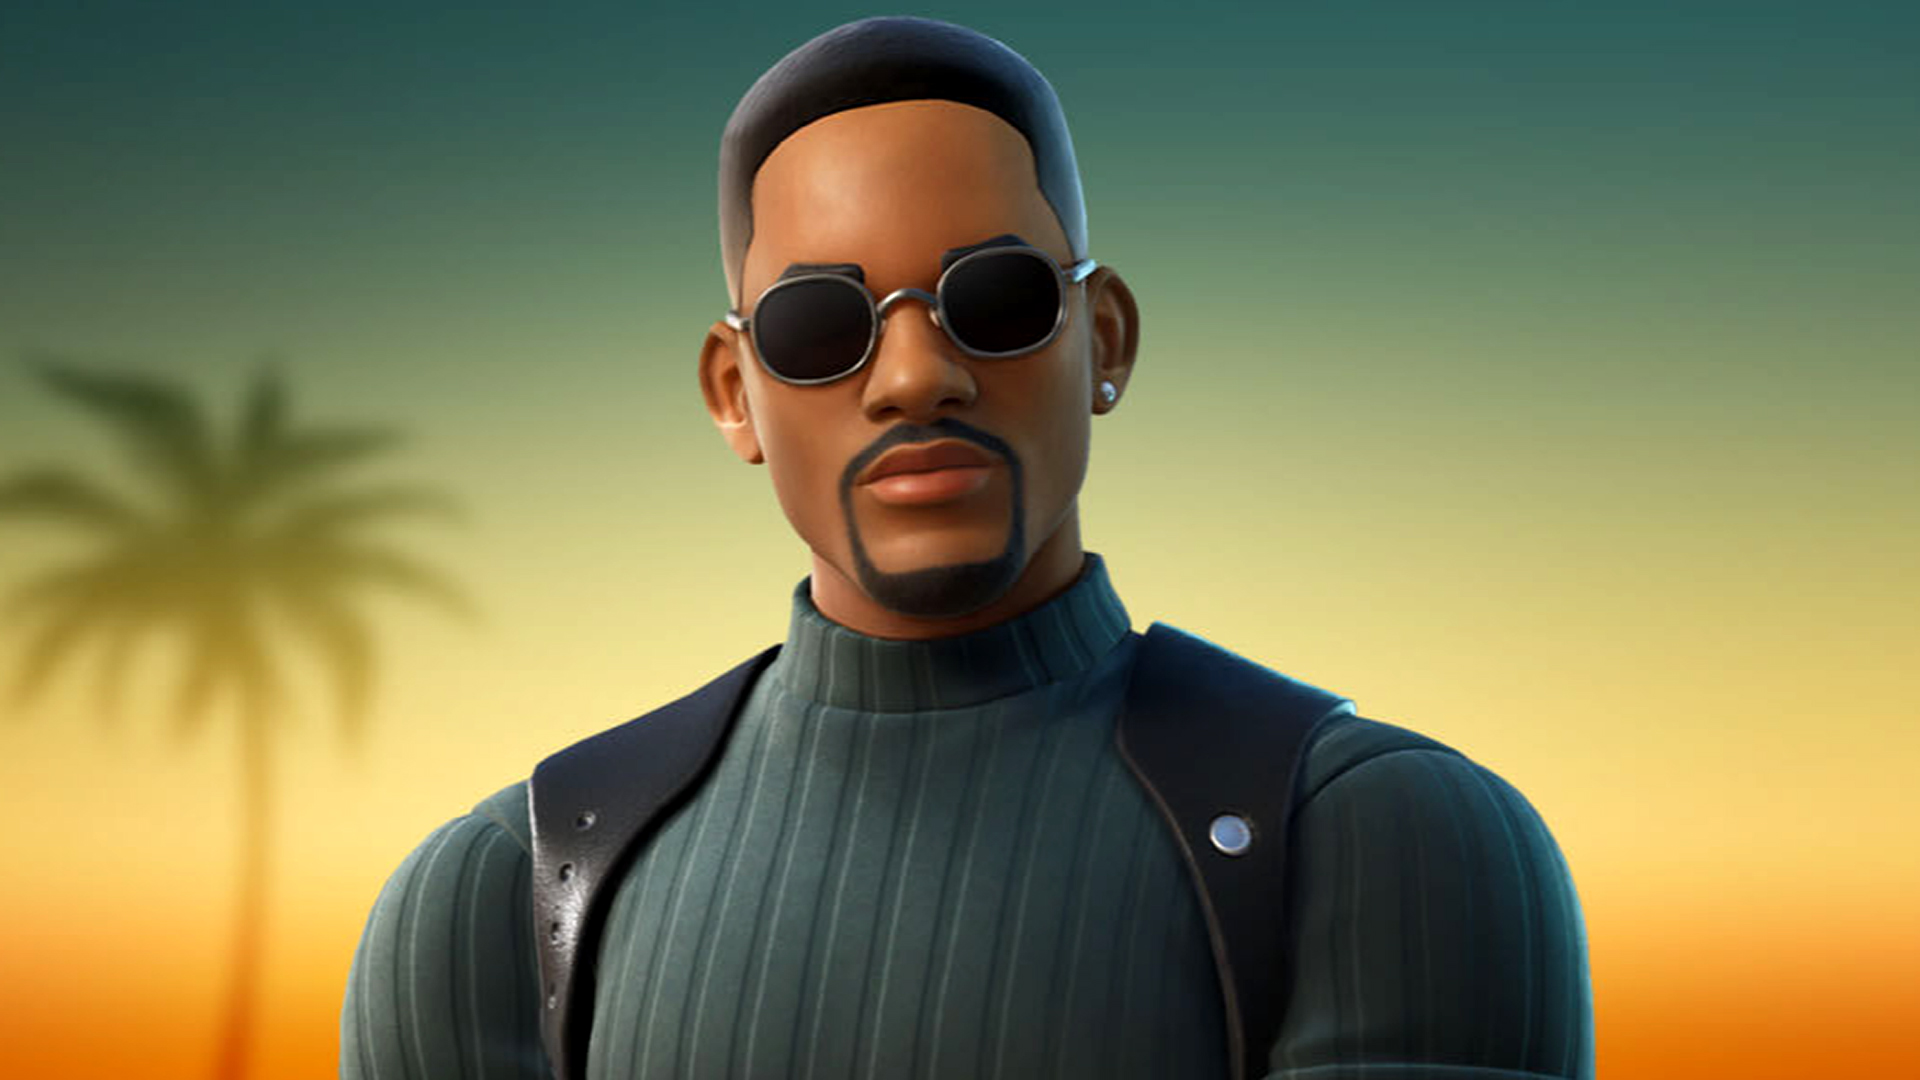 Fortnite's alien season adds the one Will Smith character who hasn't fought aliens